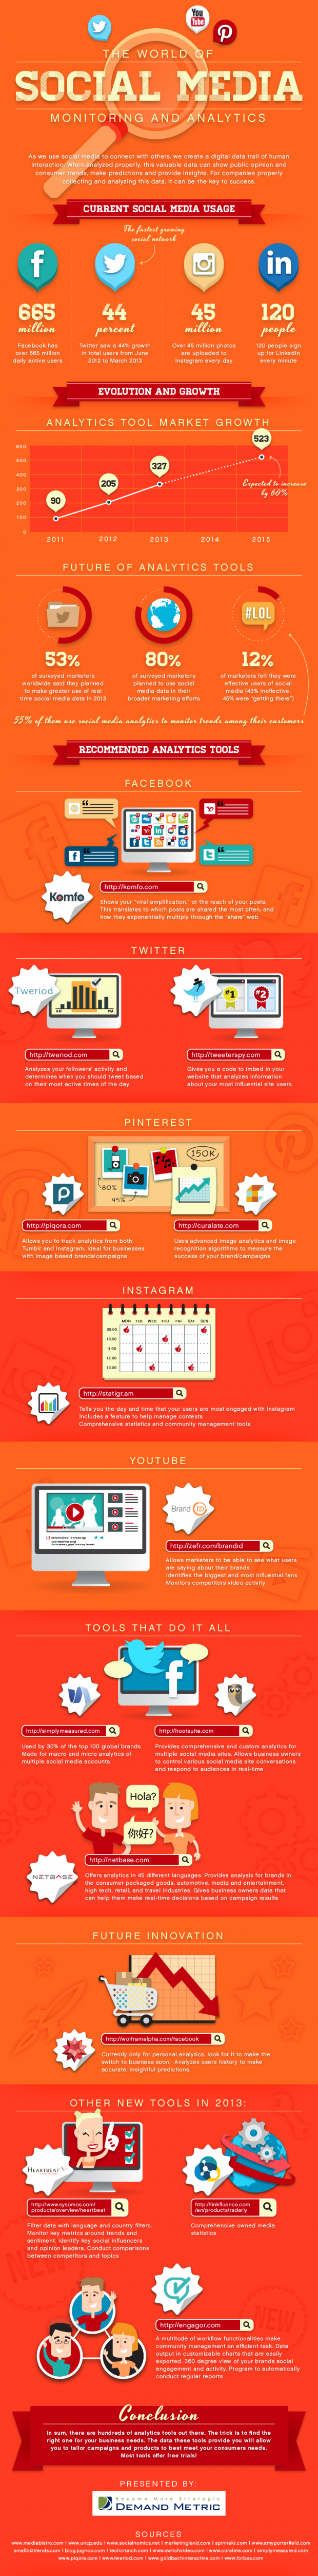 the-world-of-social-media-monitoring-and-analytics-infographic